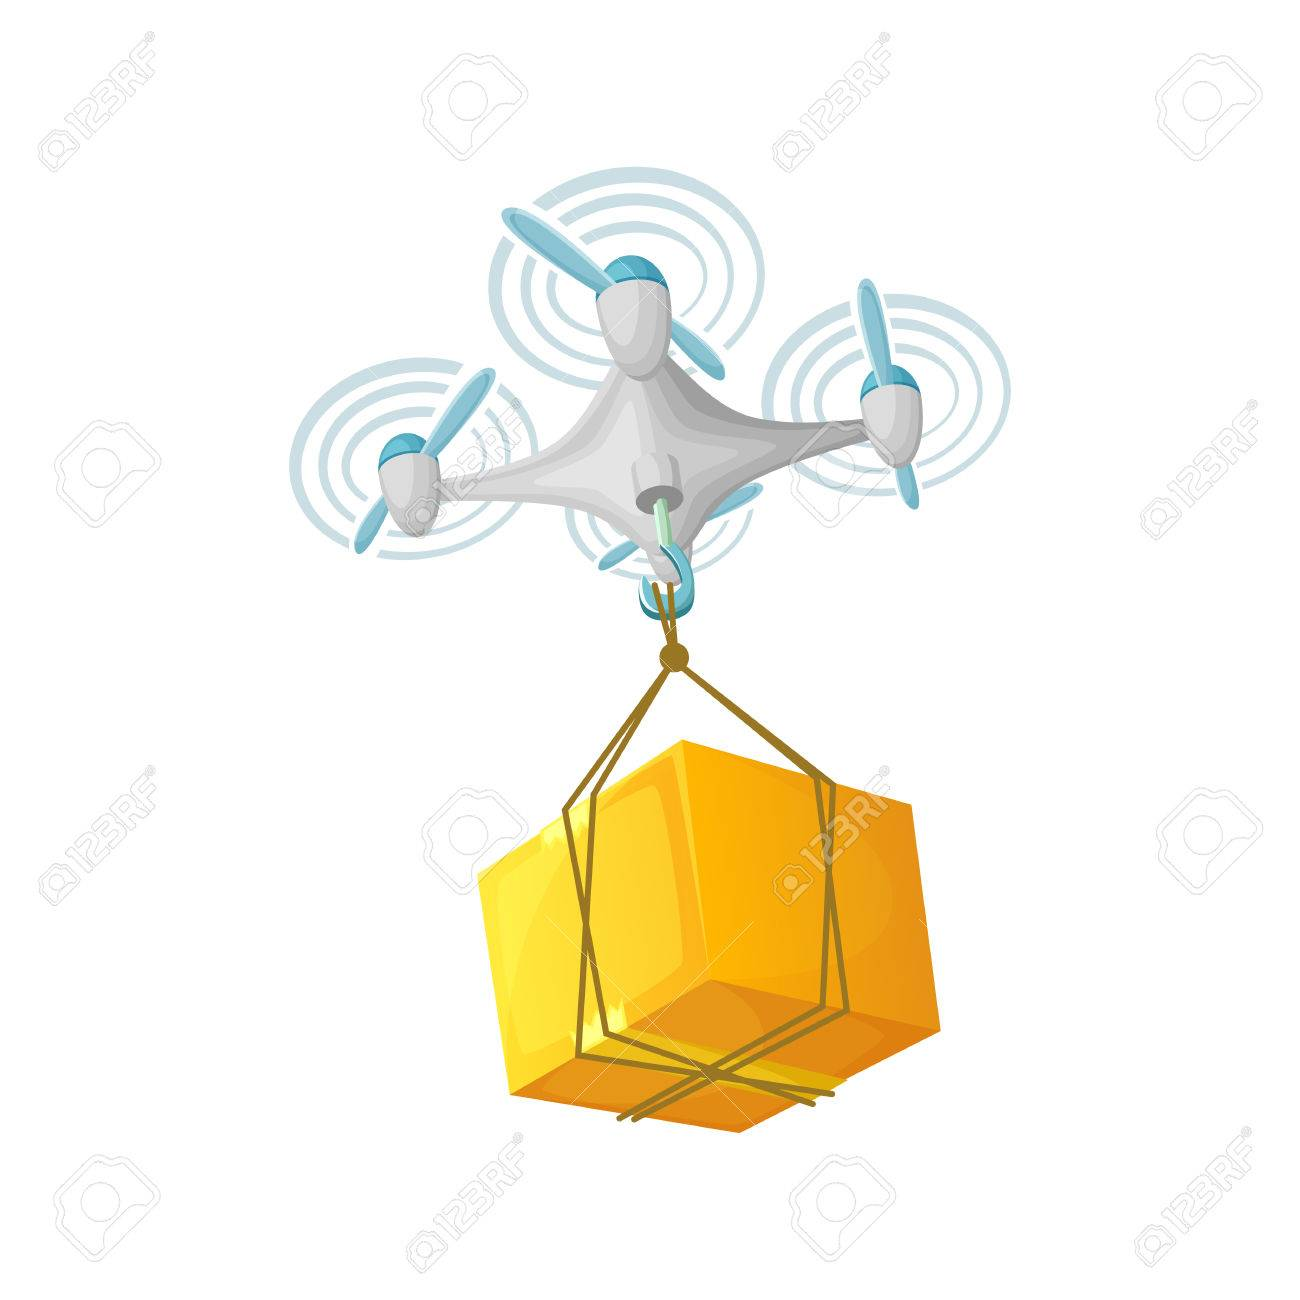 Drone Delivery Concept Design Modern Cartoon Vector Illustration Quadcopter Transportation Of Goods Stock